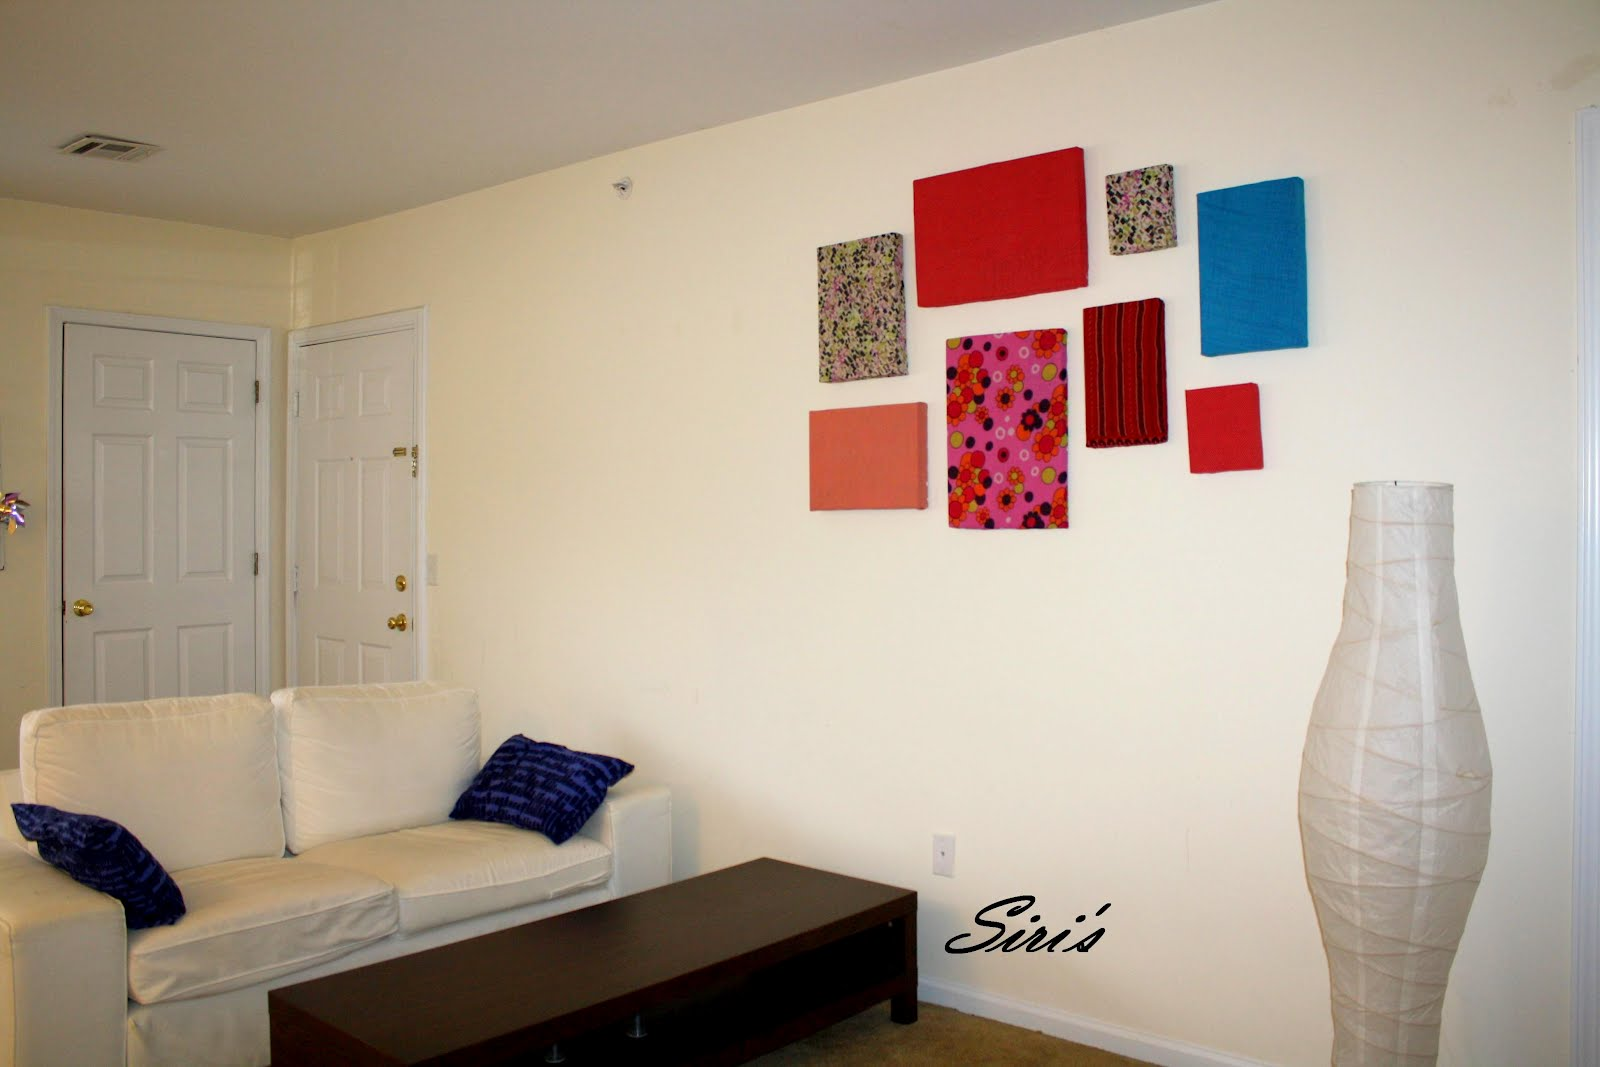 Siri's Kitchen: Wall decor with cardboard boxes and fabric